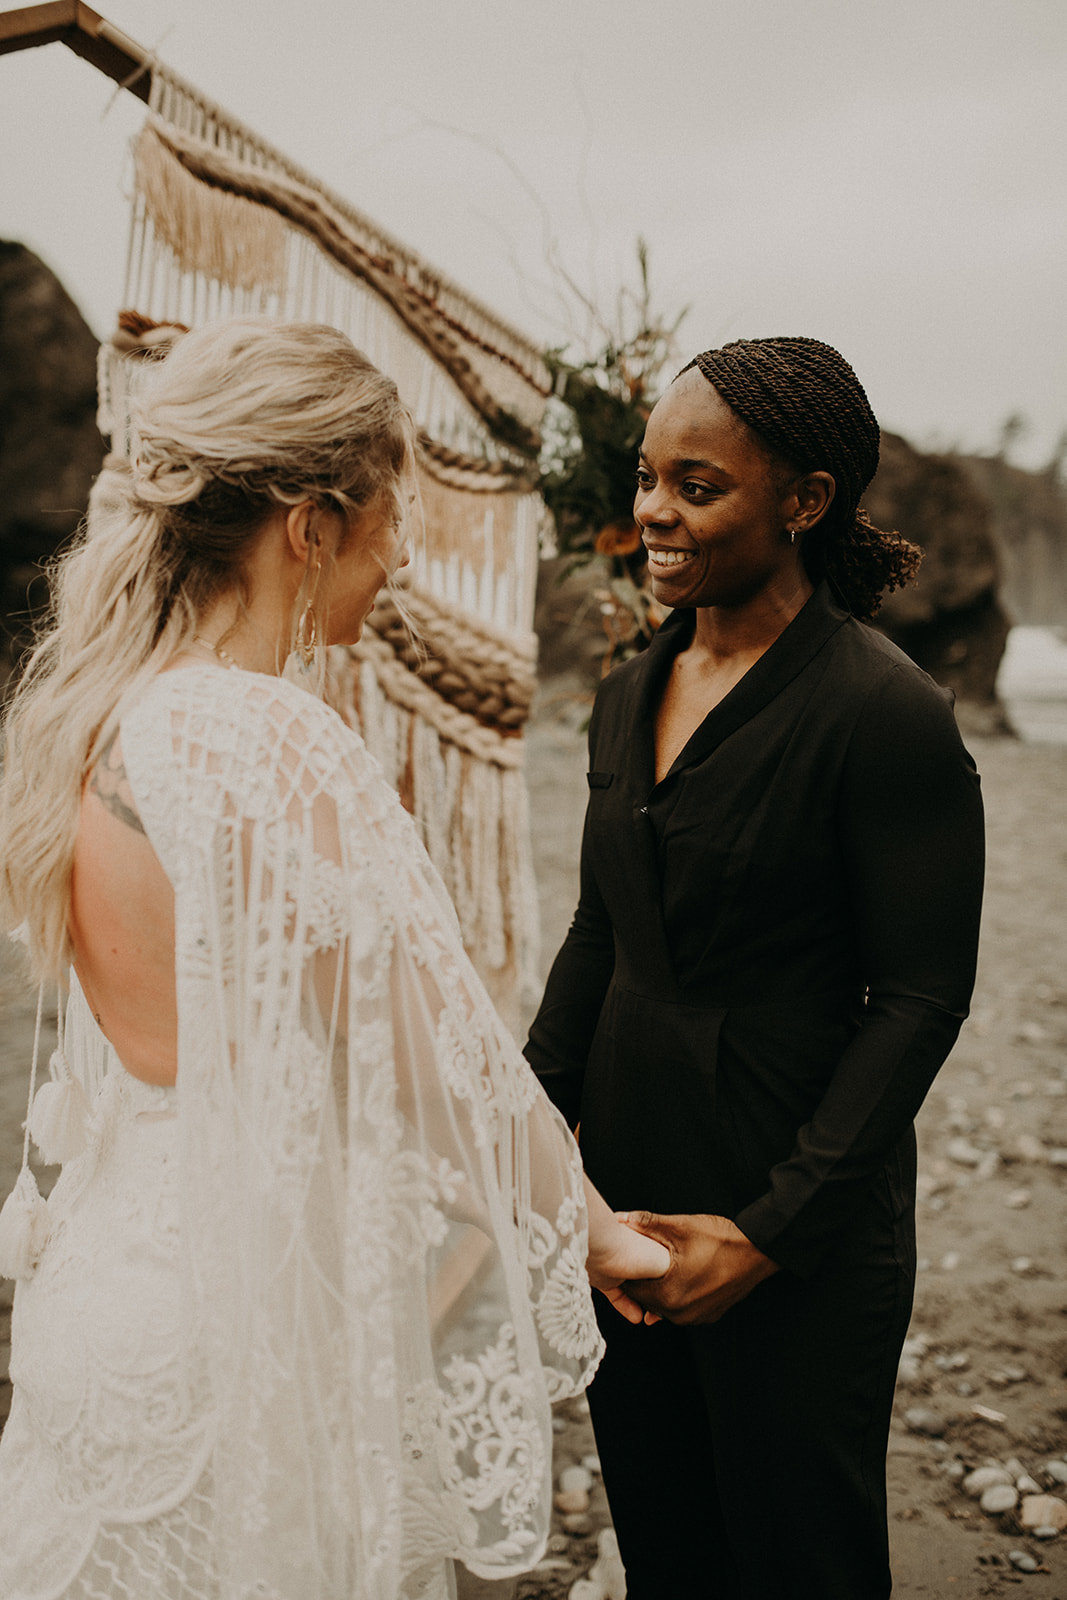 Ruby_Beach_Styled_Elopement_-_Run_Away_with_Me_Elopement_Collective_-_Kamra_Fuller_Photography_-_Ceremony-29